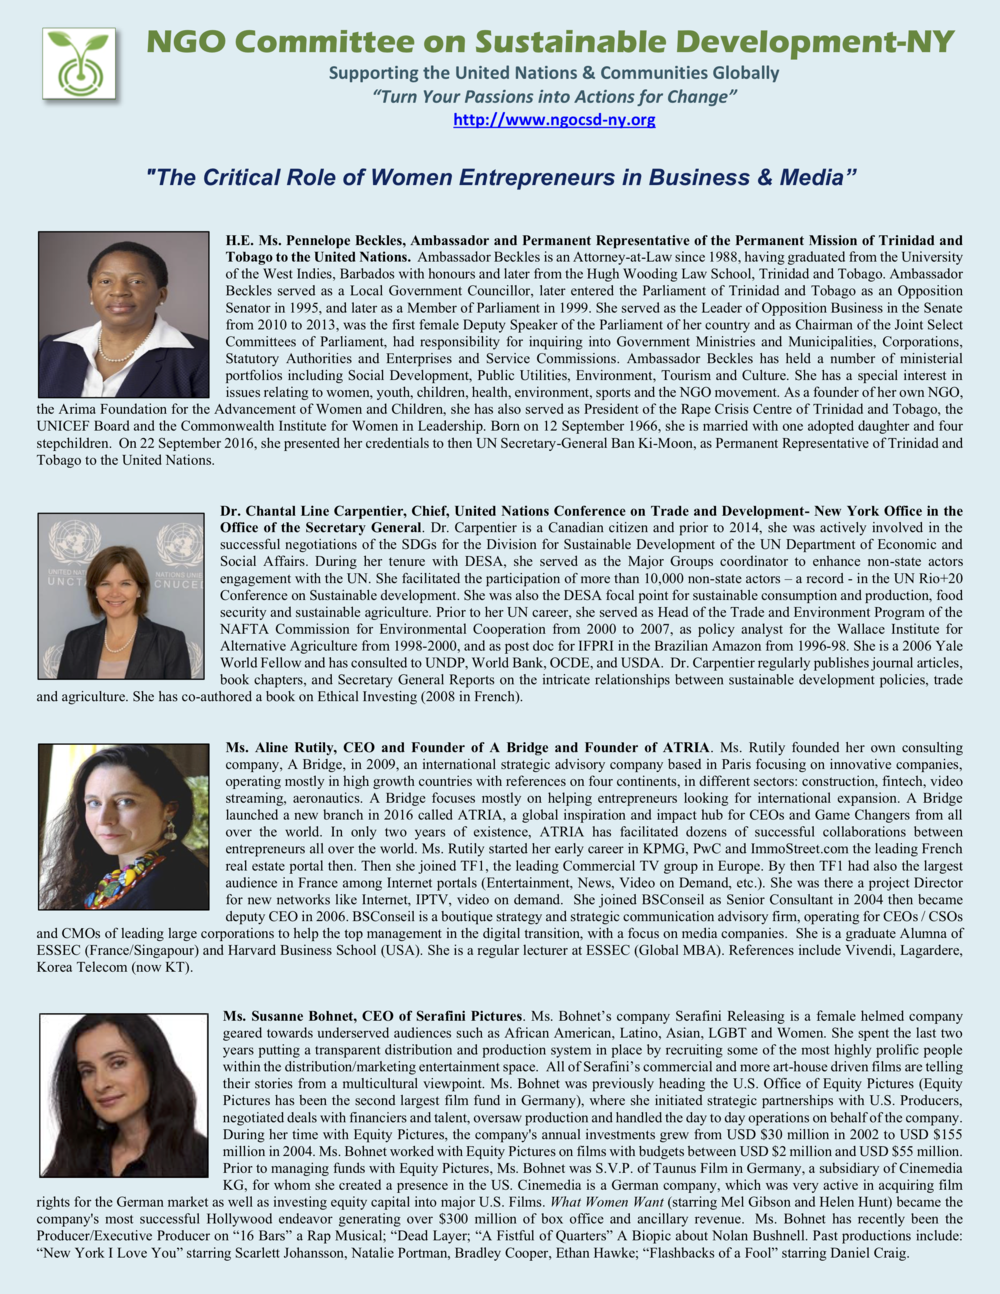 NGOCSD-NY 11-15-18 Women Entrepreneurs Series Photo Bios B2.png